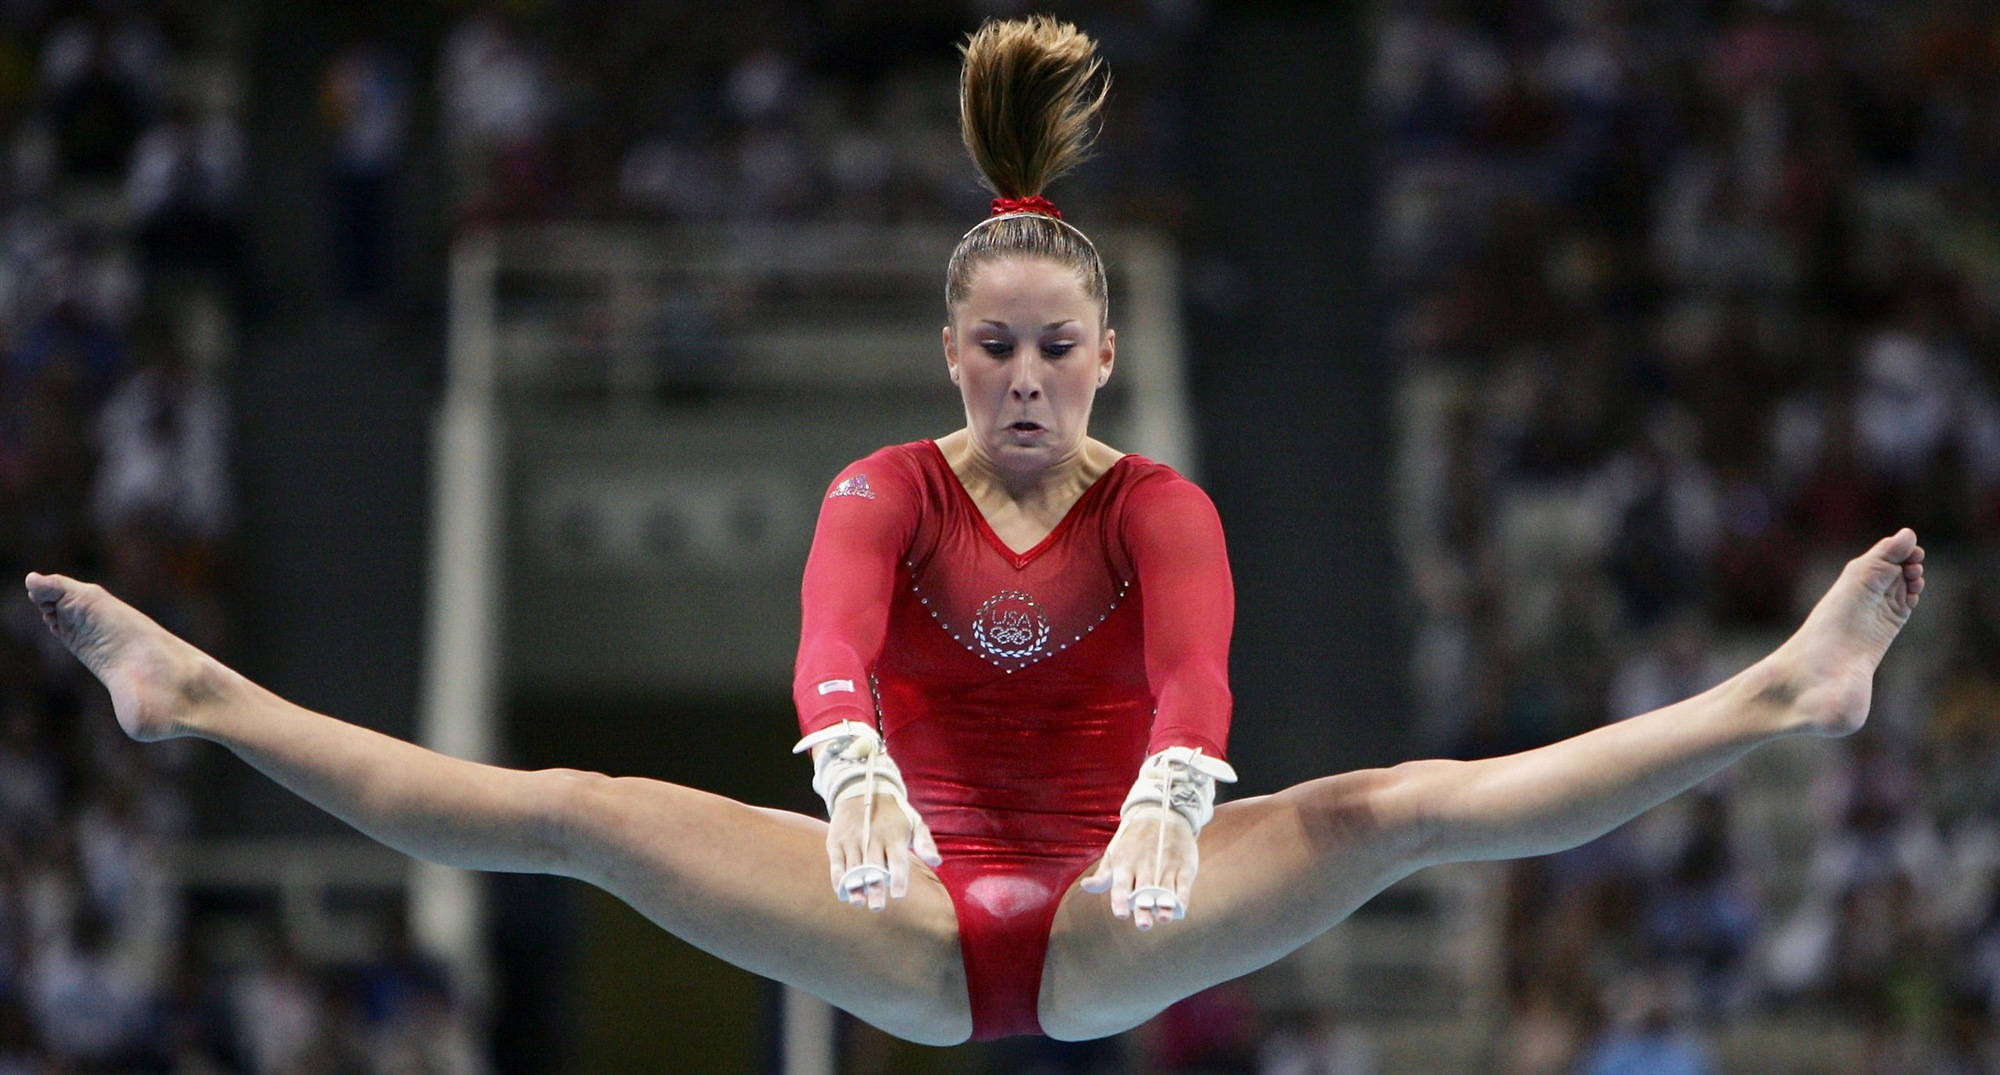 Tbt carly patterson olympics aa punch front carly patterson shawn johnson  bikini carly patterson jpg 2000x1075